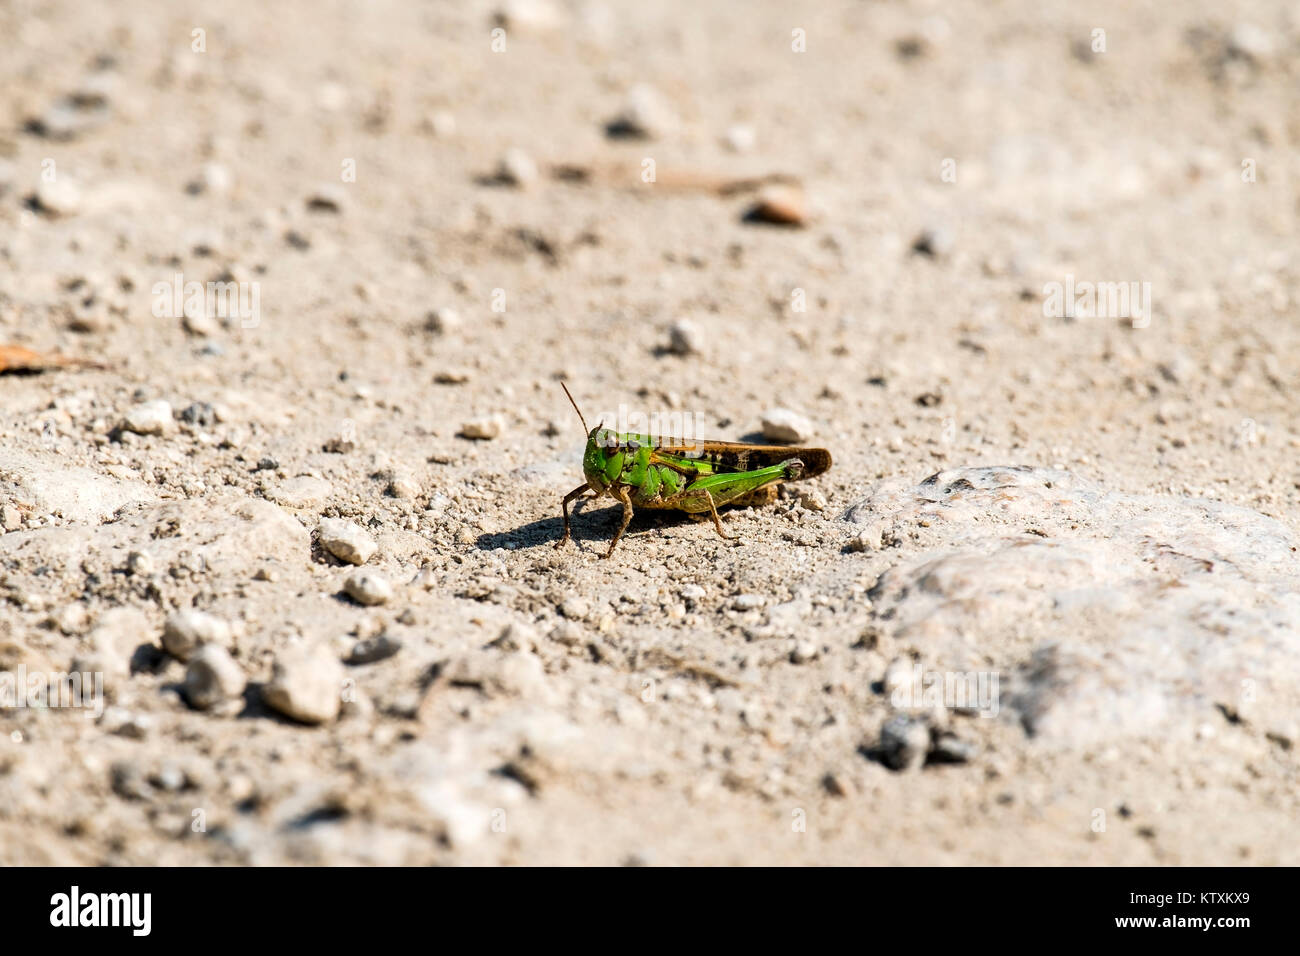 Grasshopper of the Acrididae family sits on a dirt road (Omocestus viridulus) - Stock Image